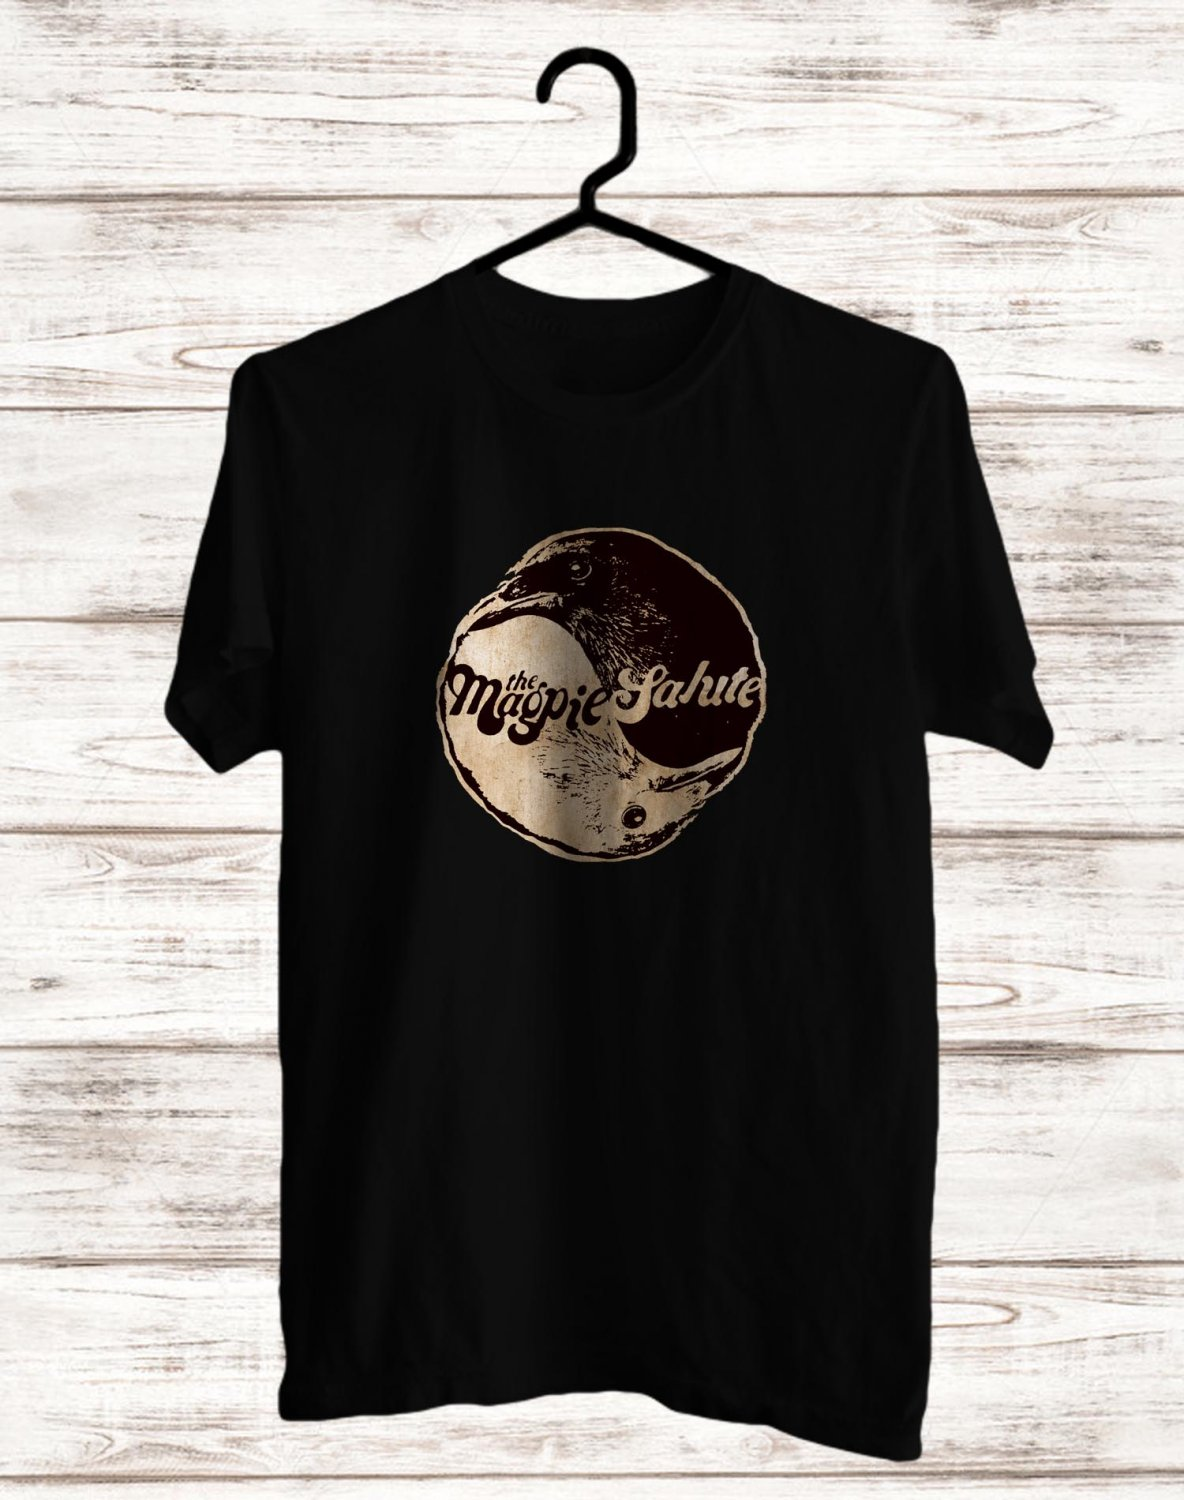 The Magpie Salute Tour 2017 BLack Tee's Front Side by Complexart z1